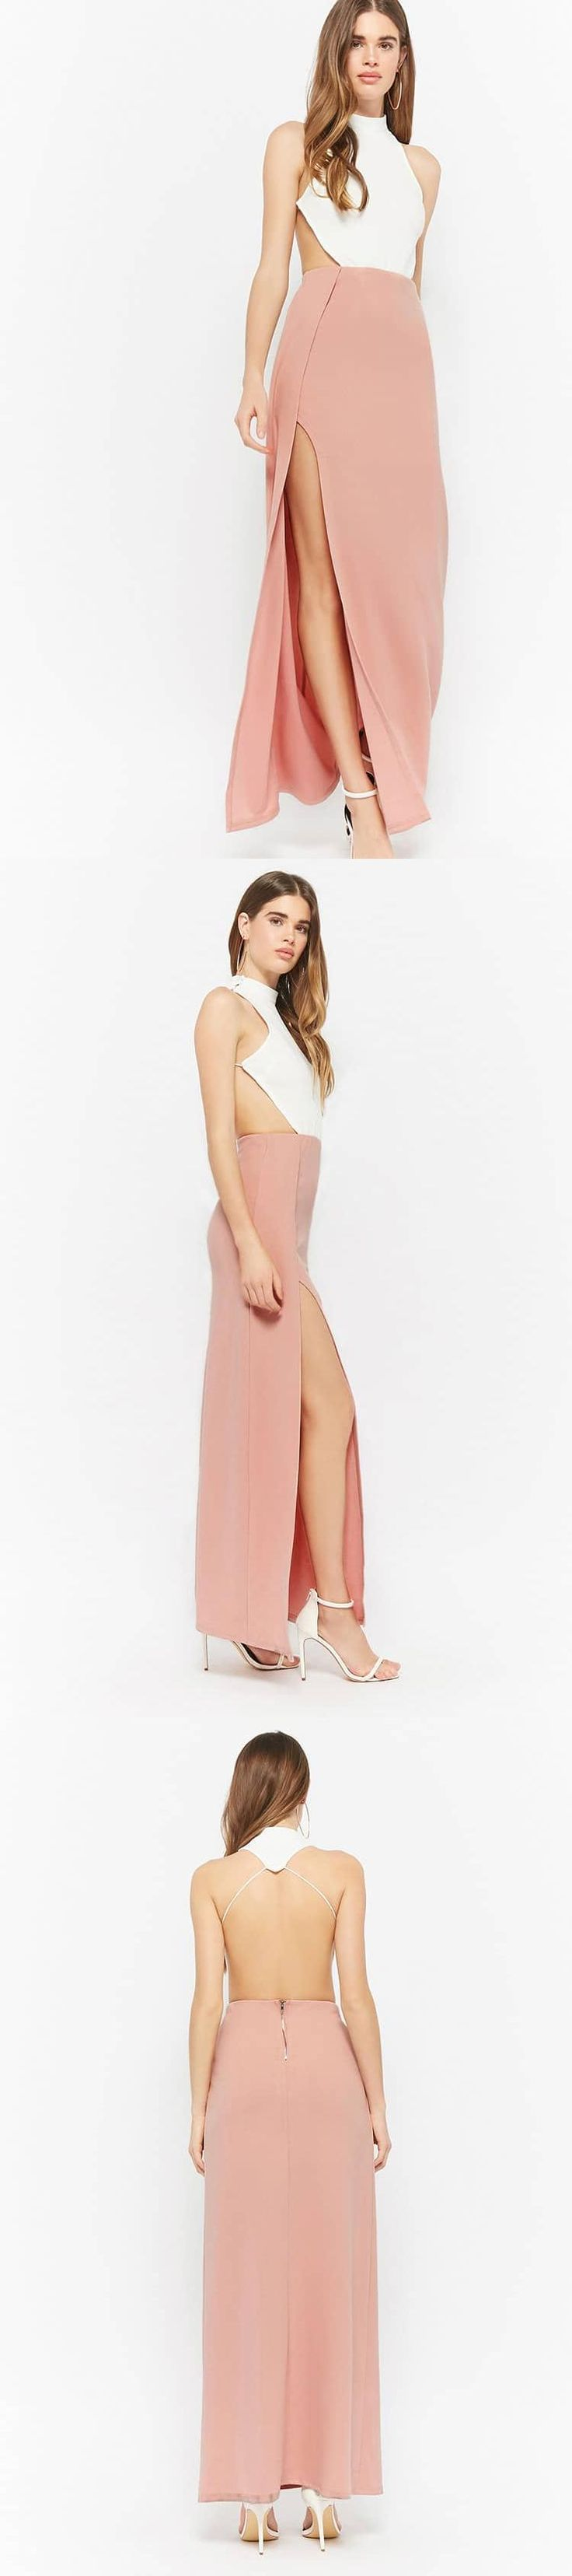 Contrast Halter Maxi Dress // 58.00 USD // Forever 21